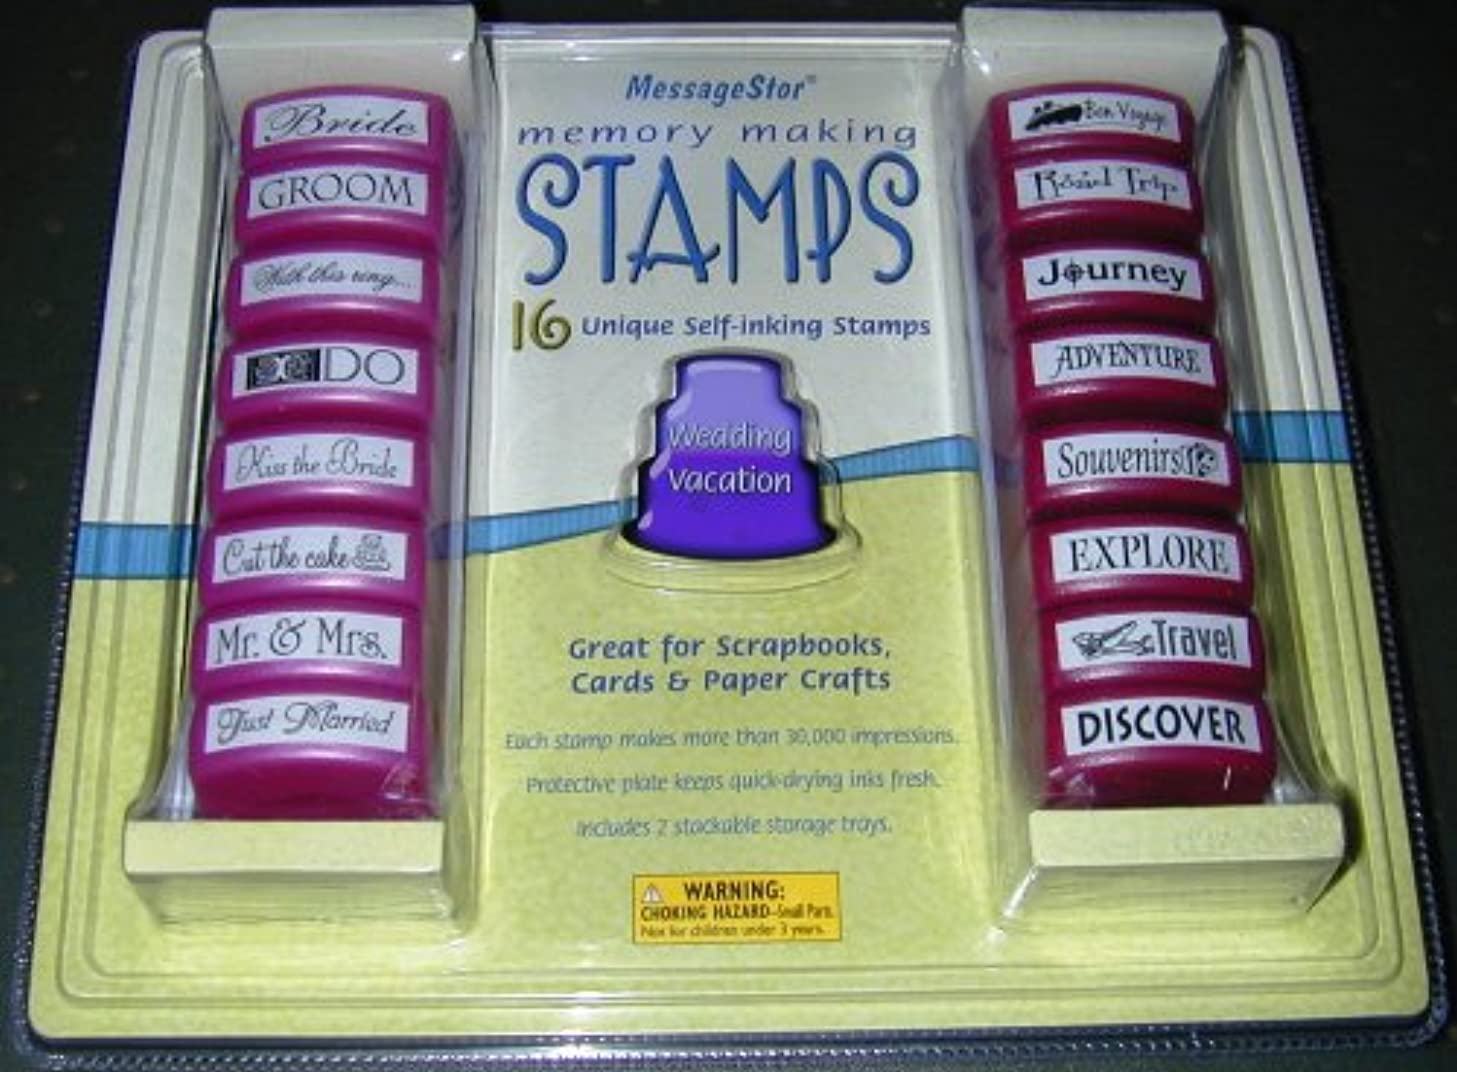 16 Unique Self-Inking Wedding and Vacation Memory Making Stamps by MessageStor (1 Set)